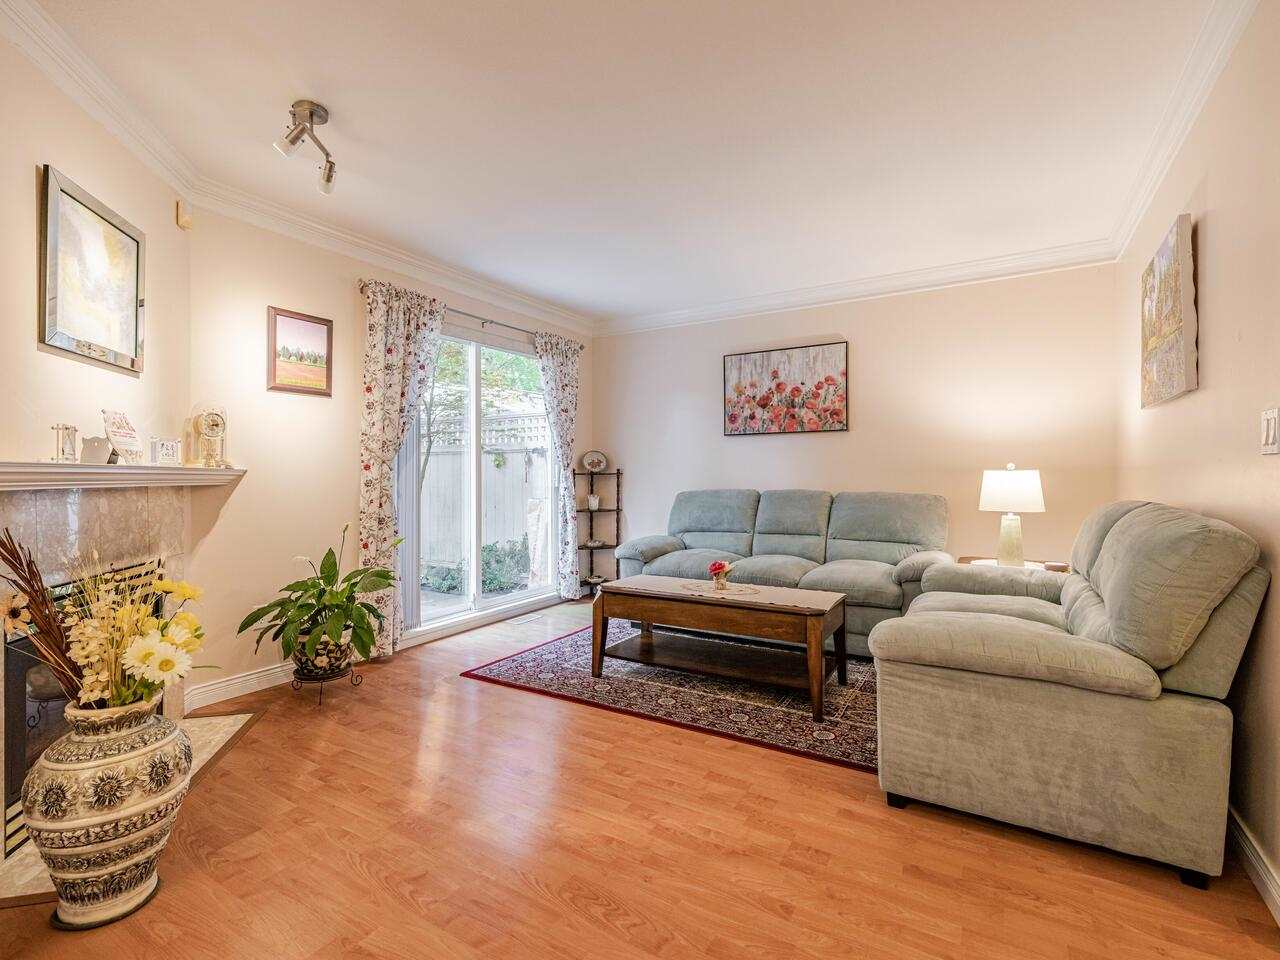 11 15875 84 AVE AVENUE - Fleetwood Tynehead Townhouse for sale, 3 Bedrooms (R2574652) - #4